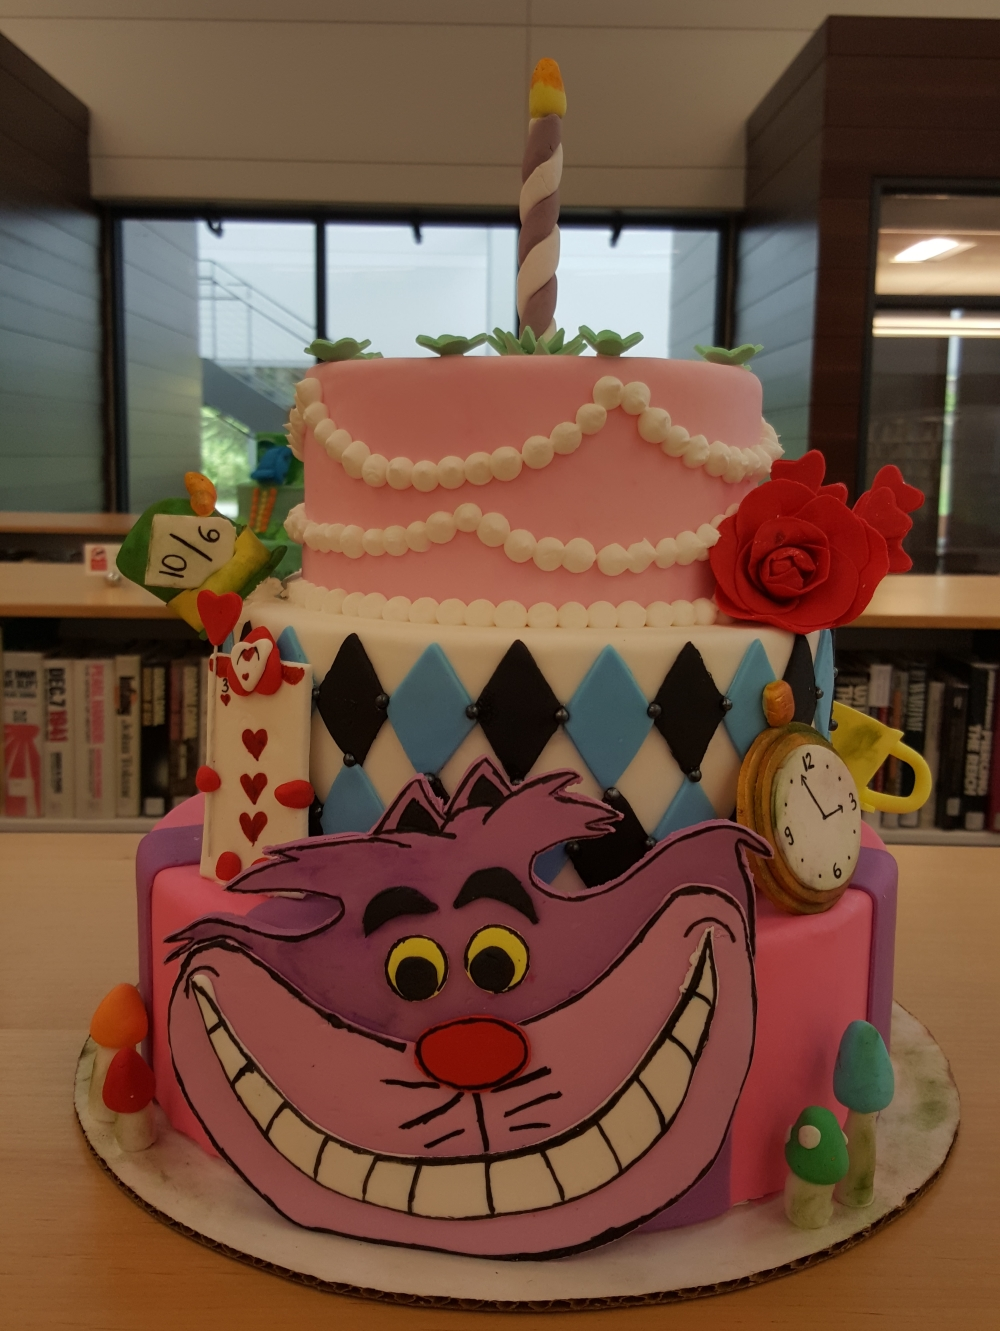 2019 Cakes Alice in Wonderland - front view